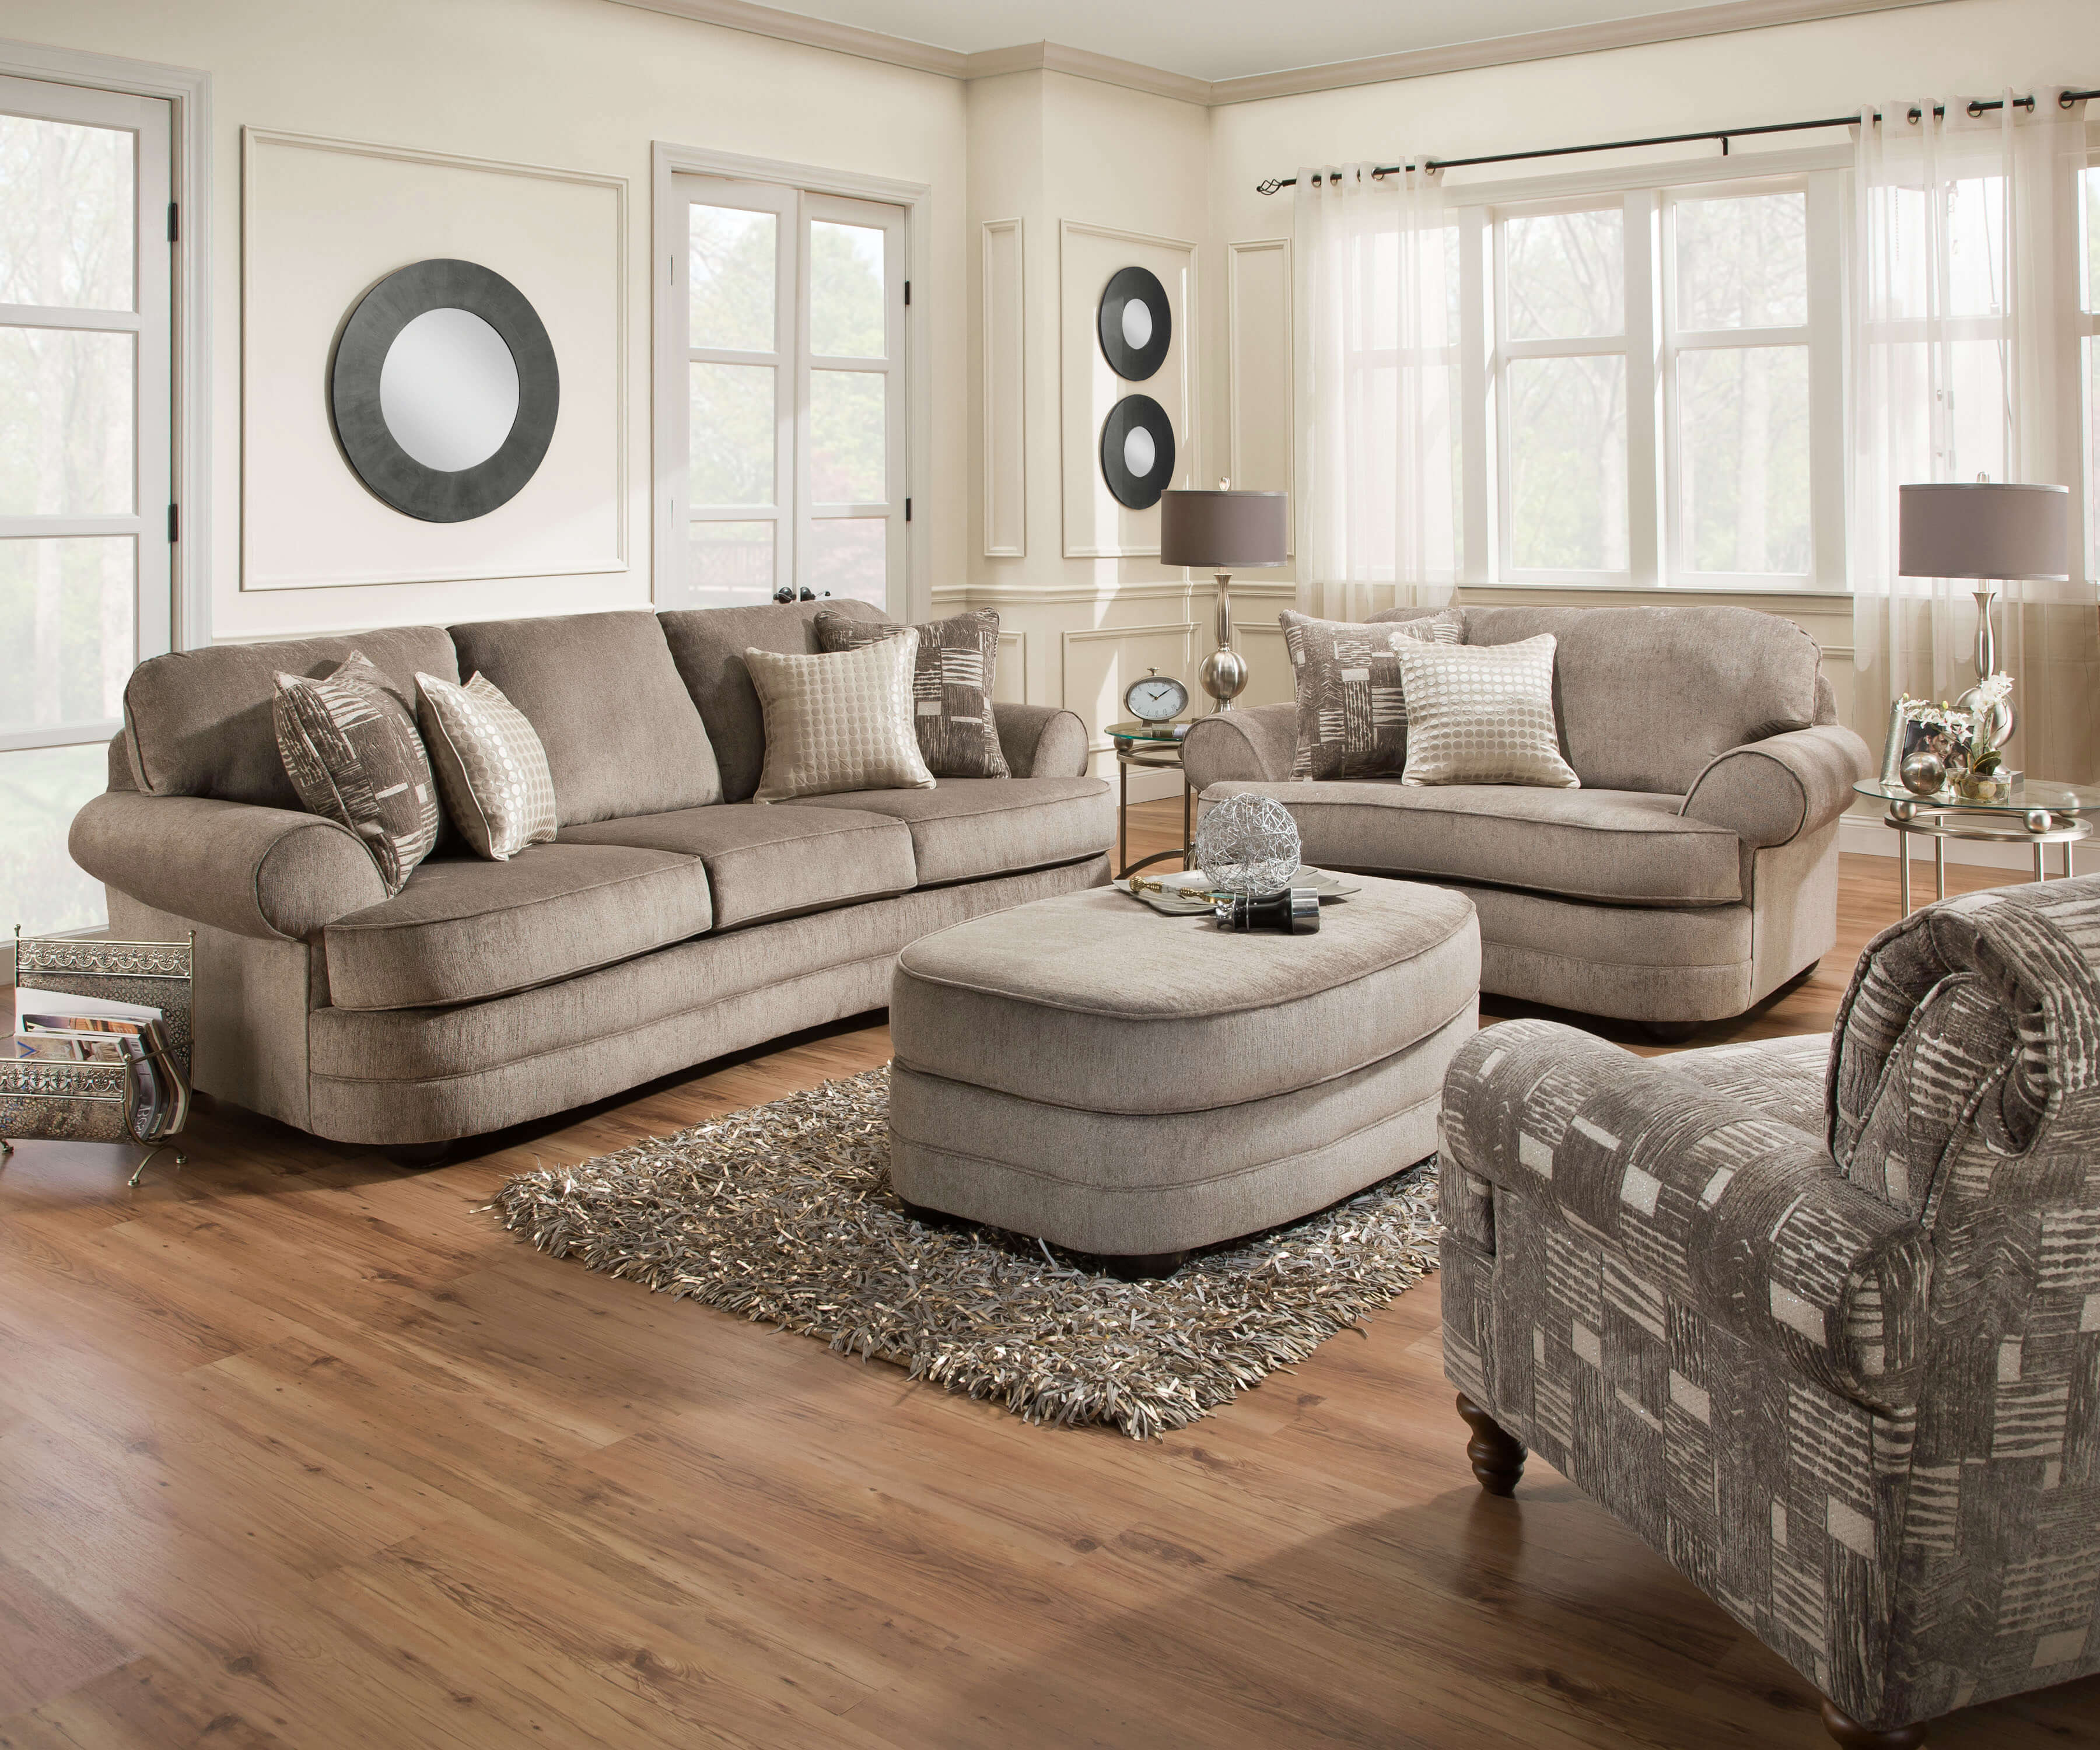 chair 1 2 canvas folding kingsley pewter sofa and ottoman set by simmons